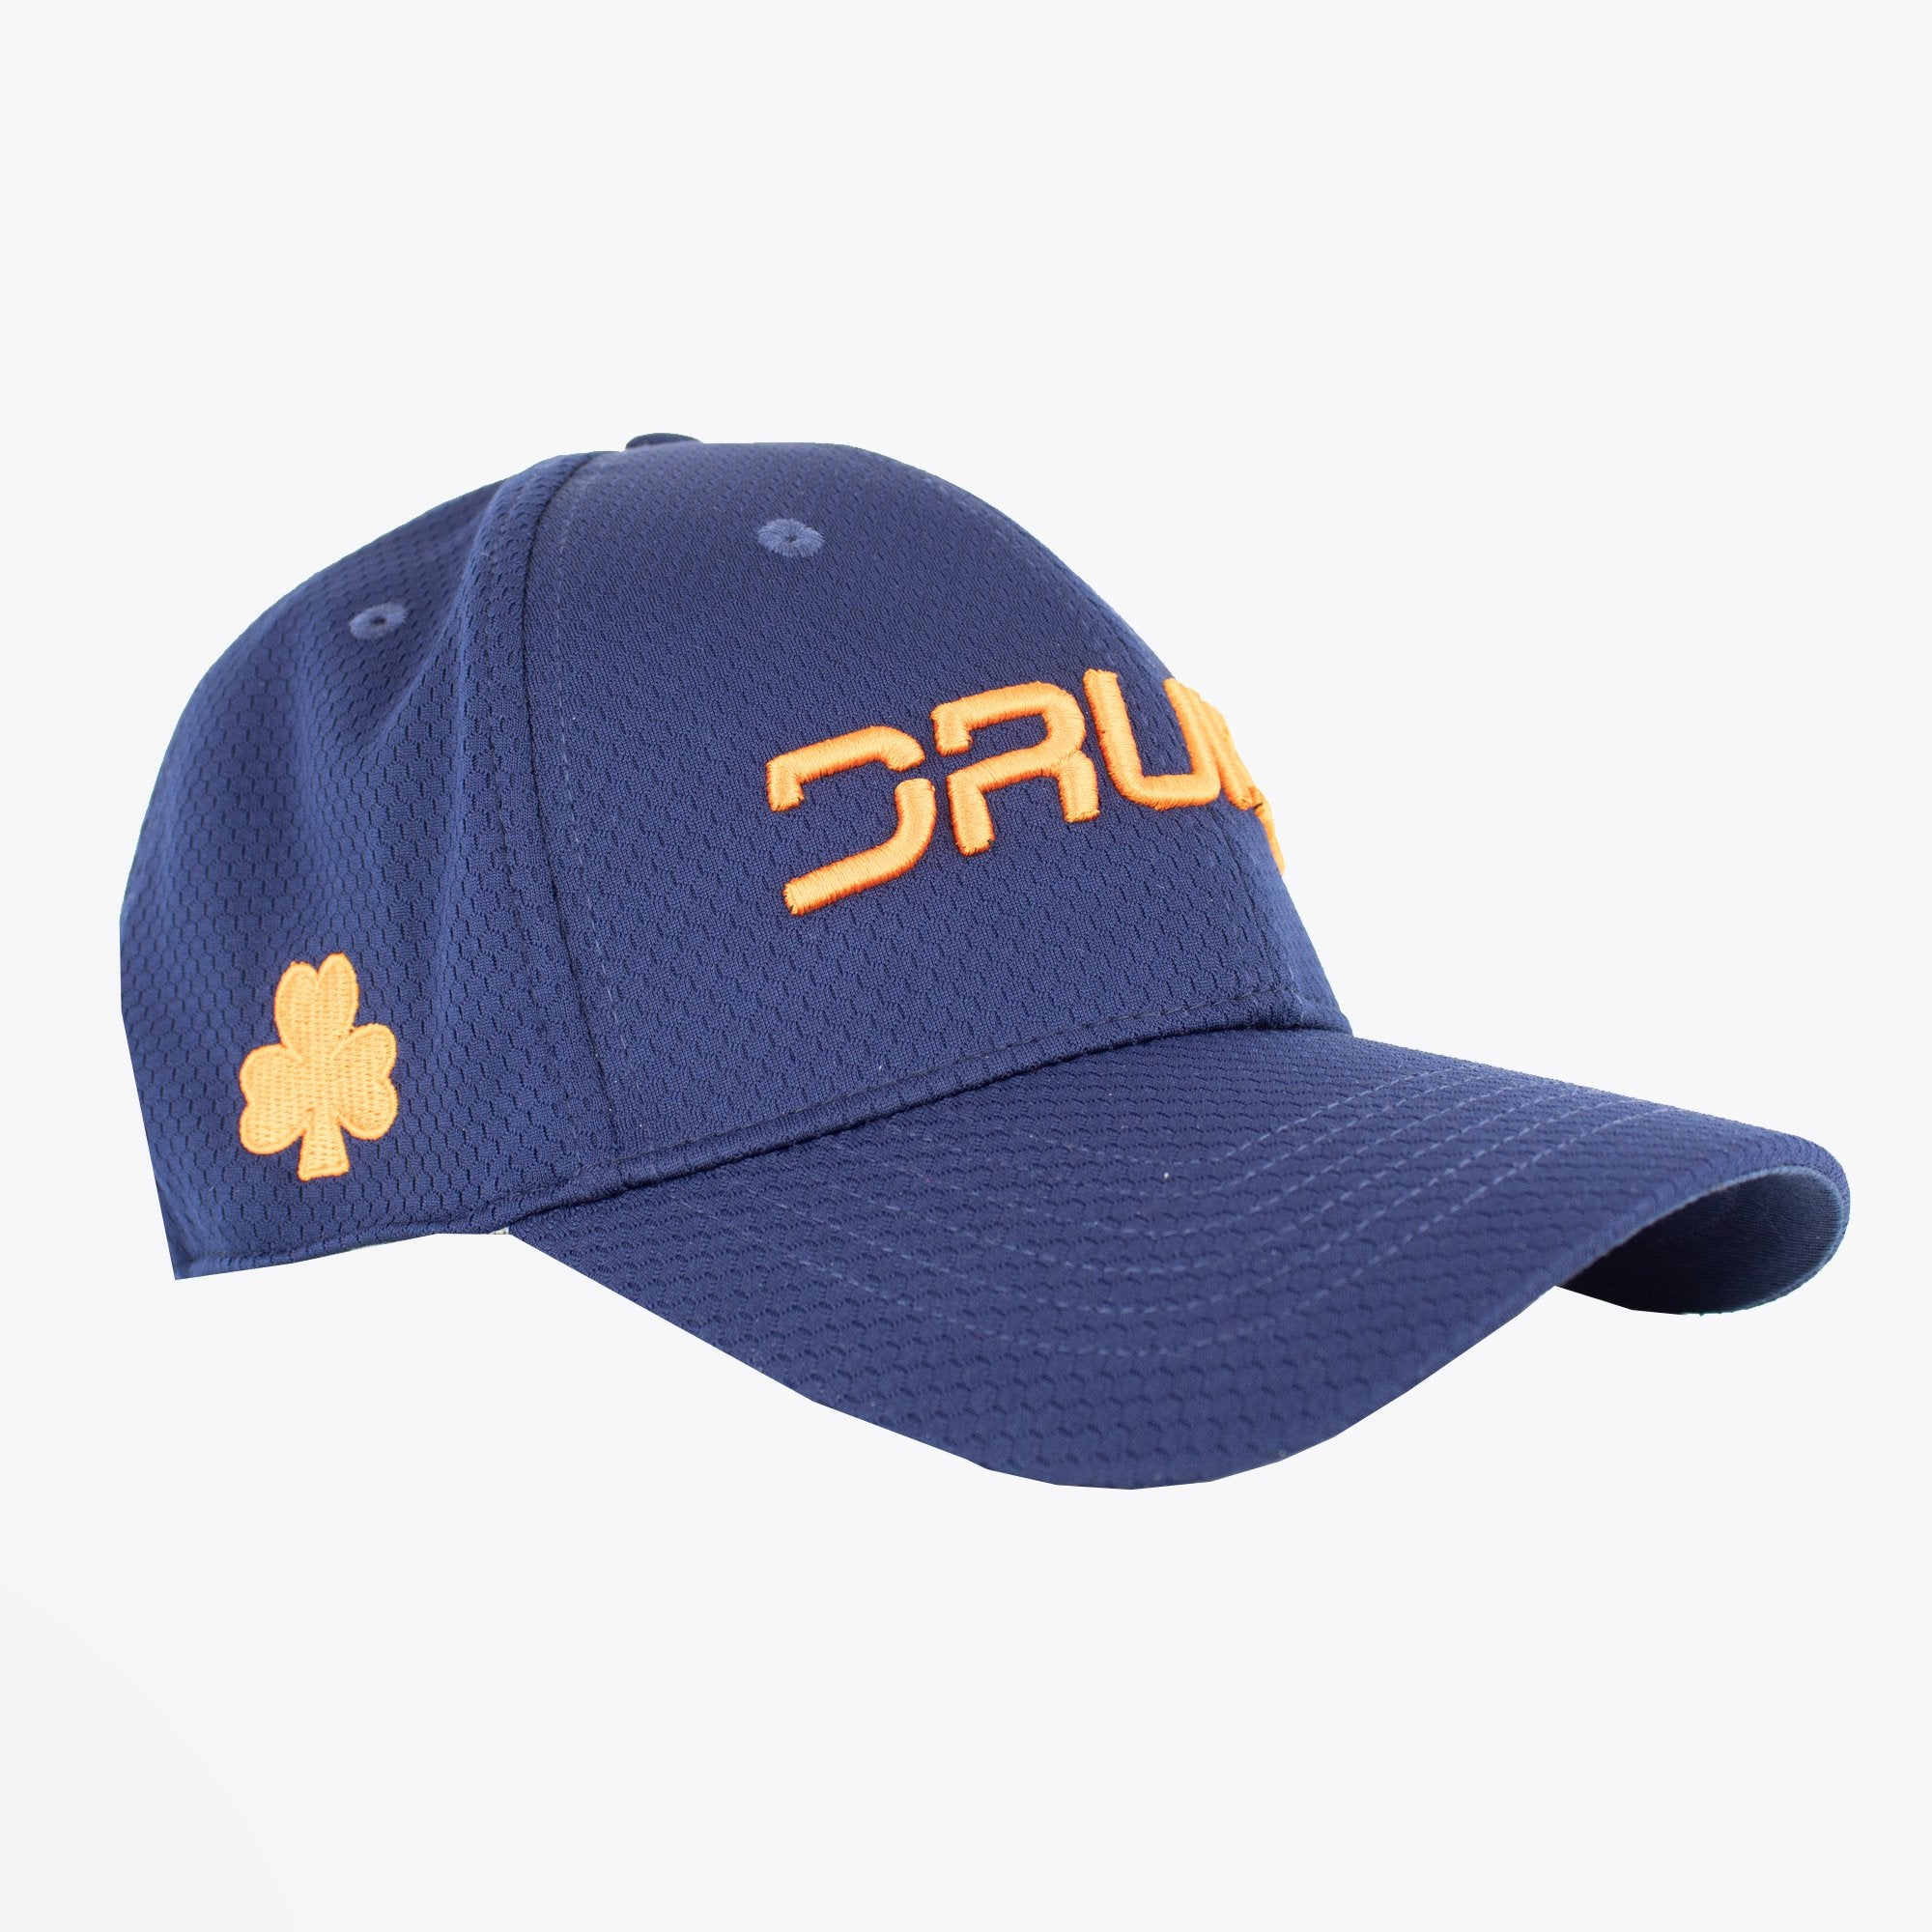 Druids Golf - Tour Cap Navy (Druids)